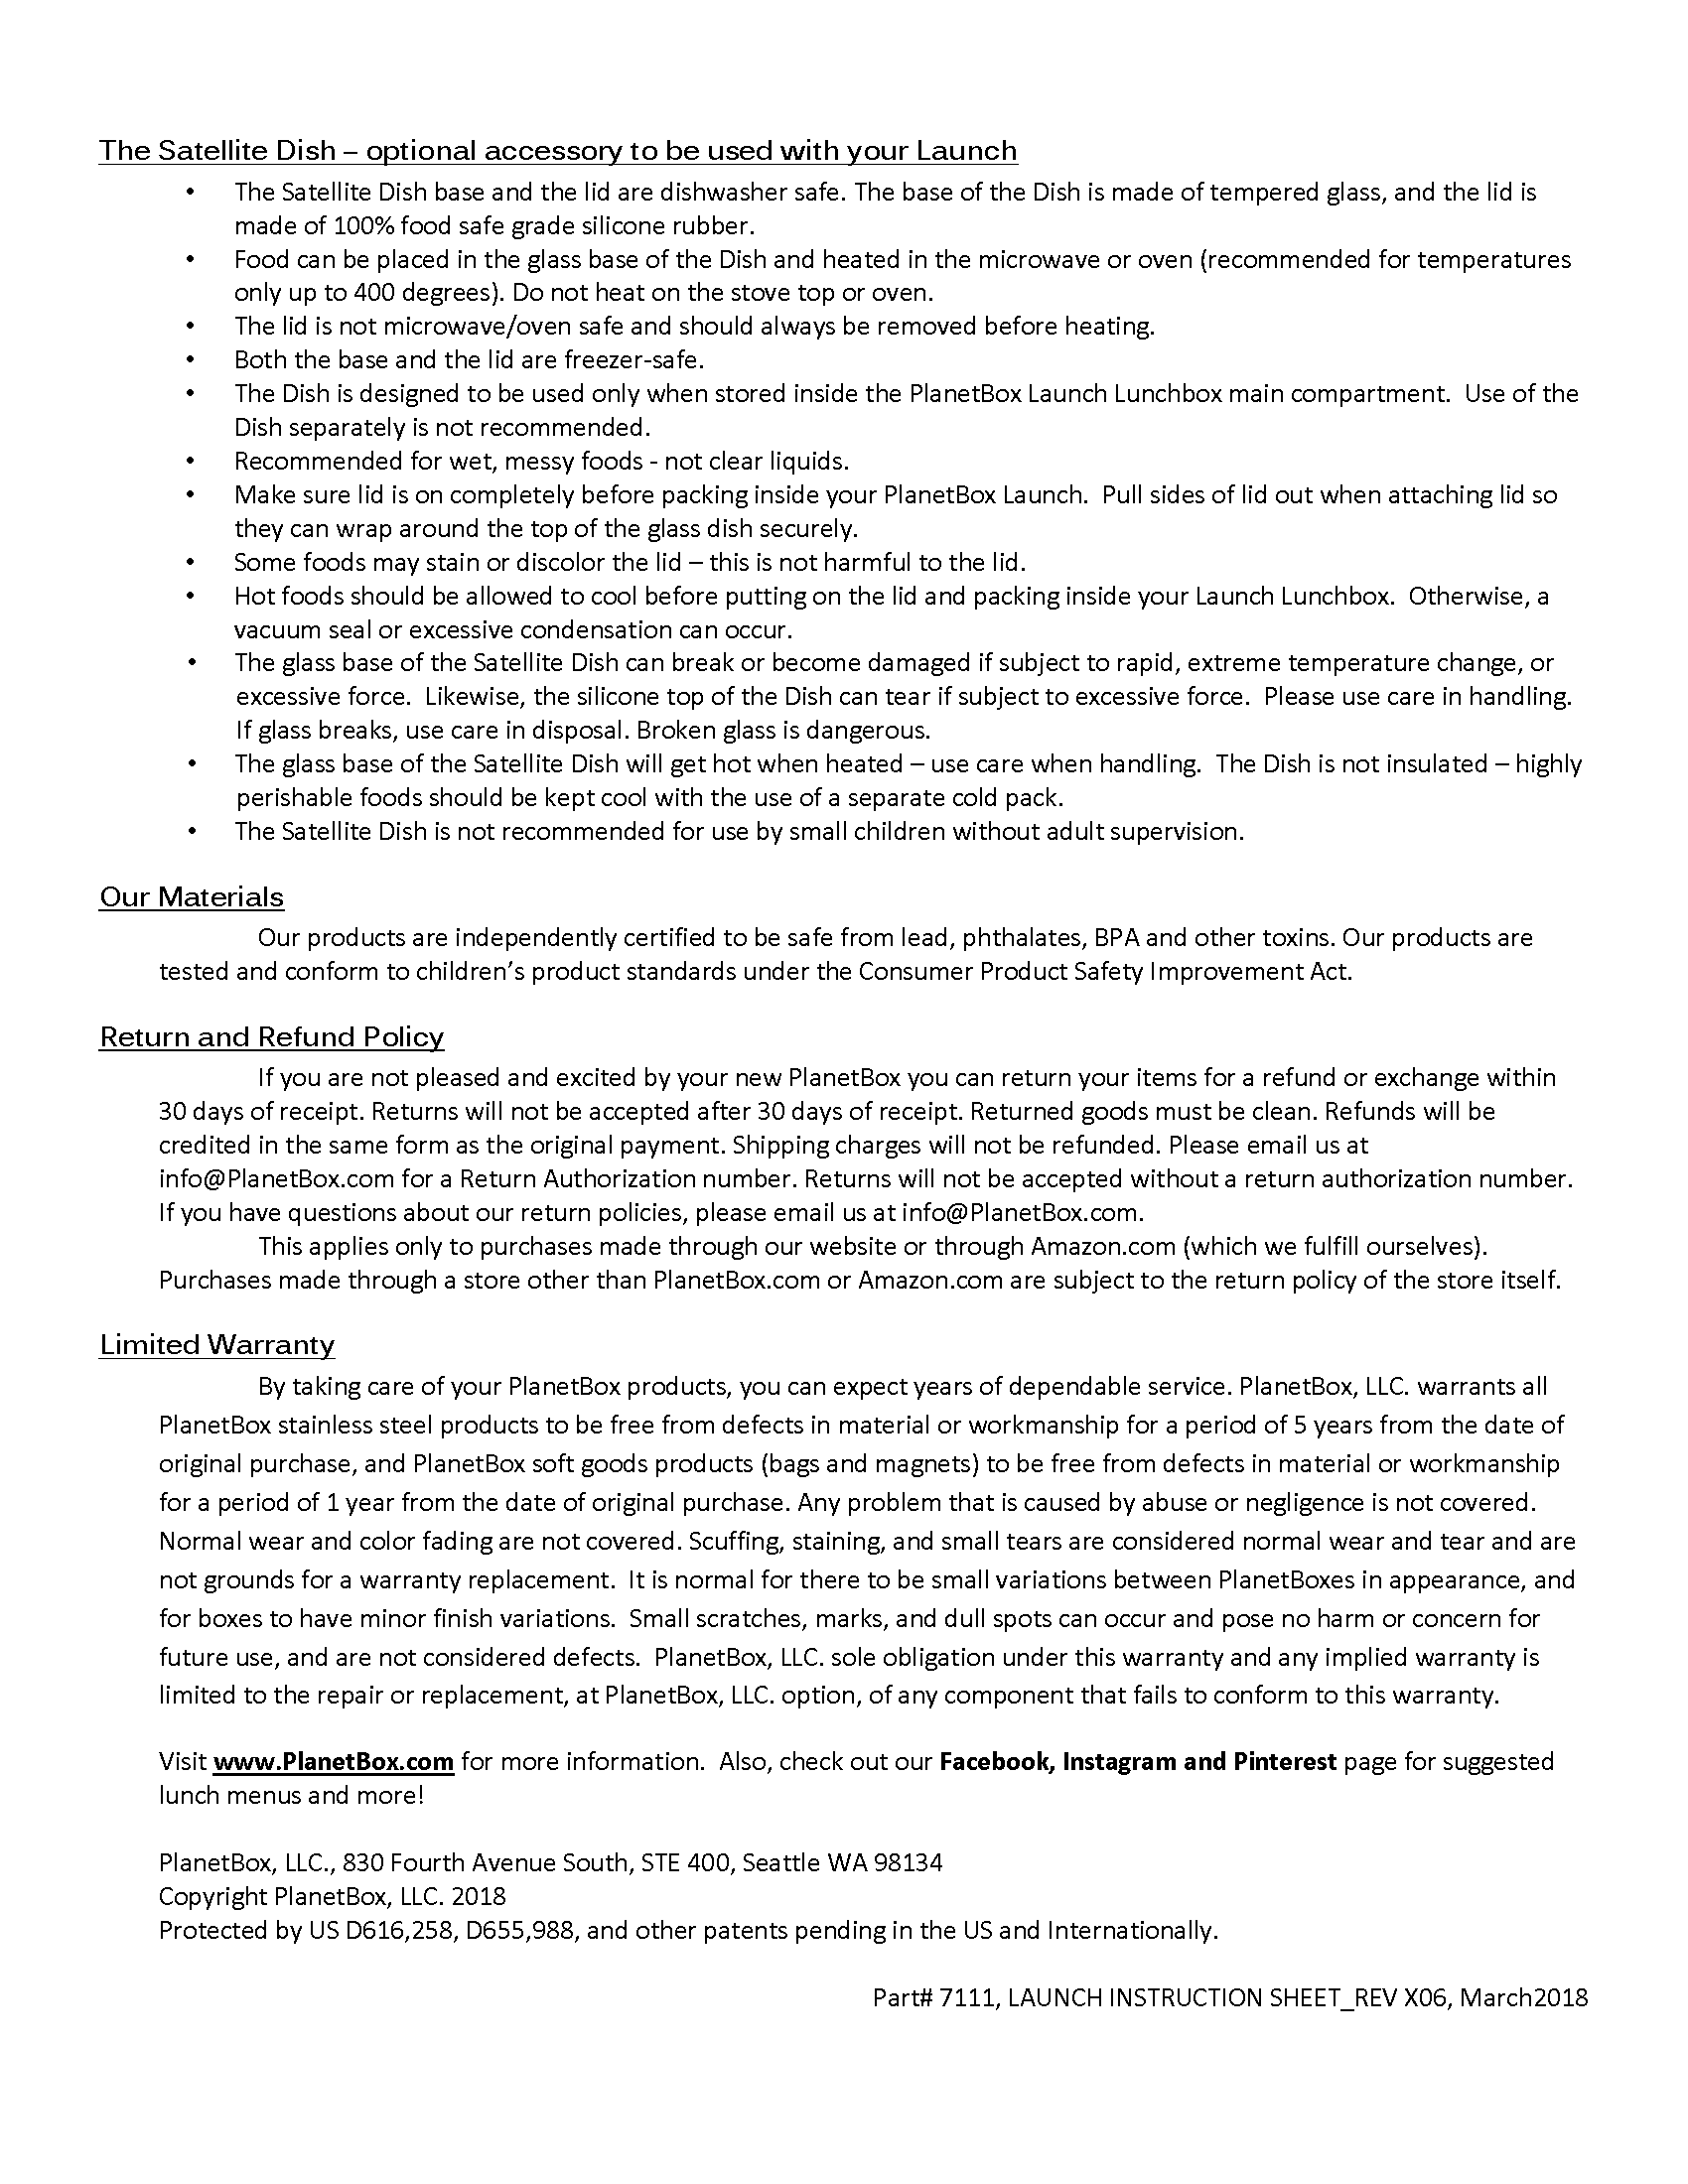 Launch instructions, page 2